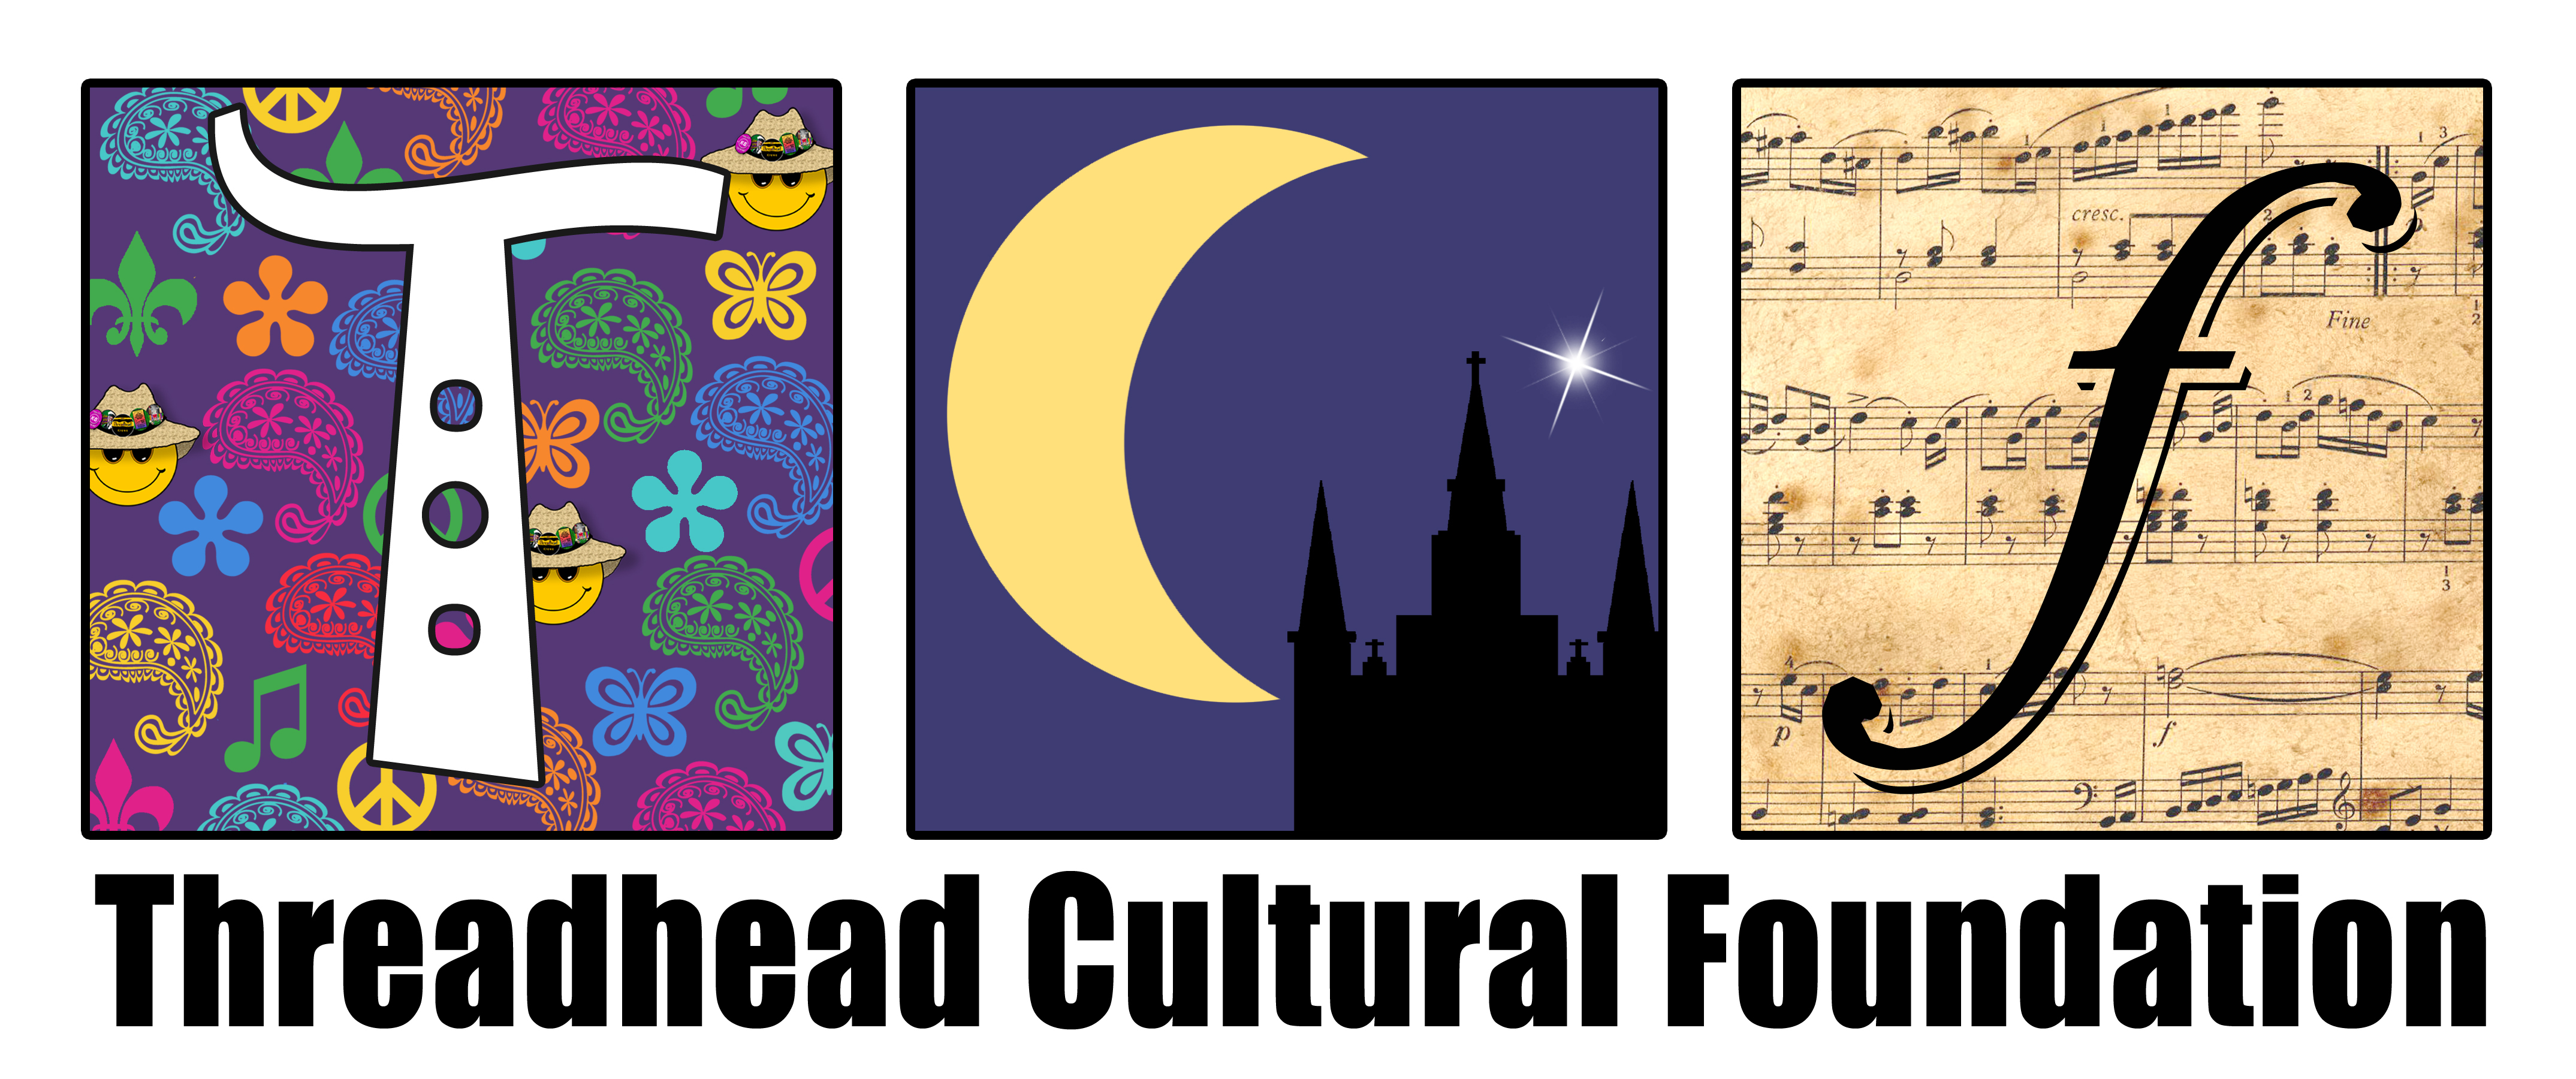 Threadhead Cultural Foundation